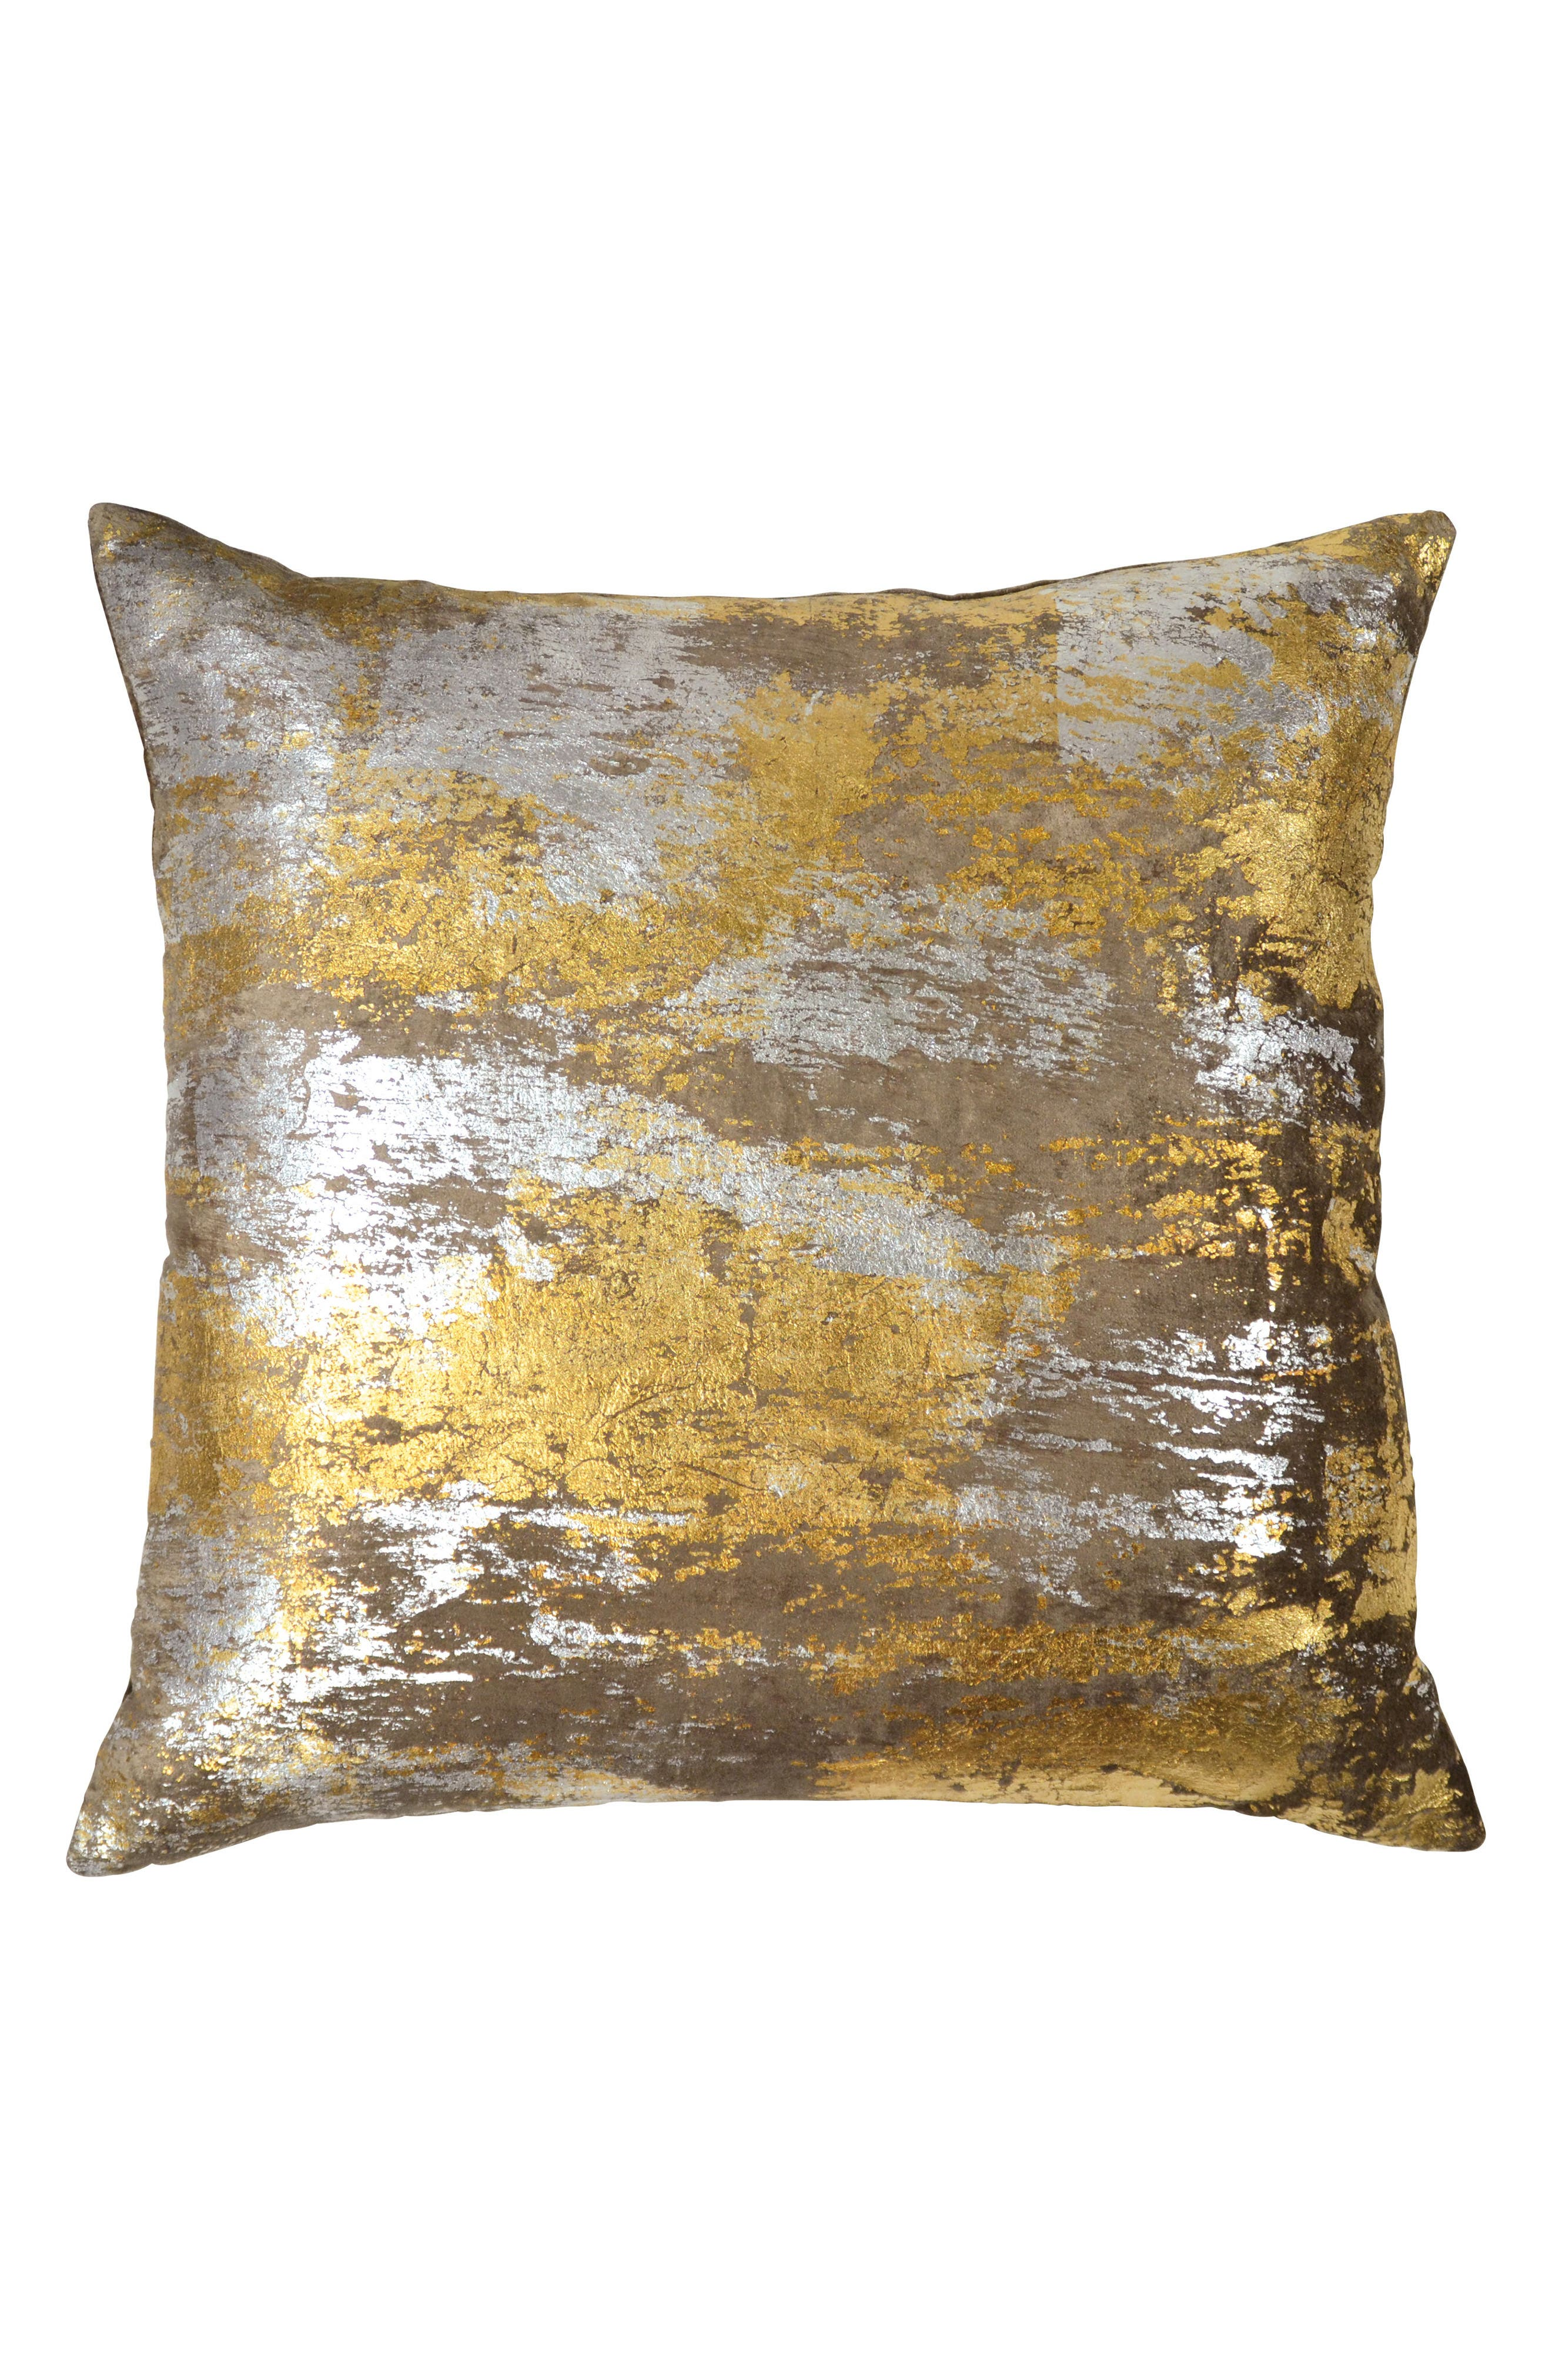 MICHAEL ARAM Distressed Metallic Accent Pillow, Main, color, SILVER